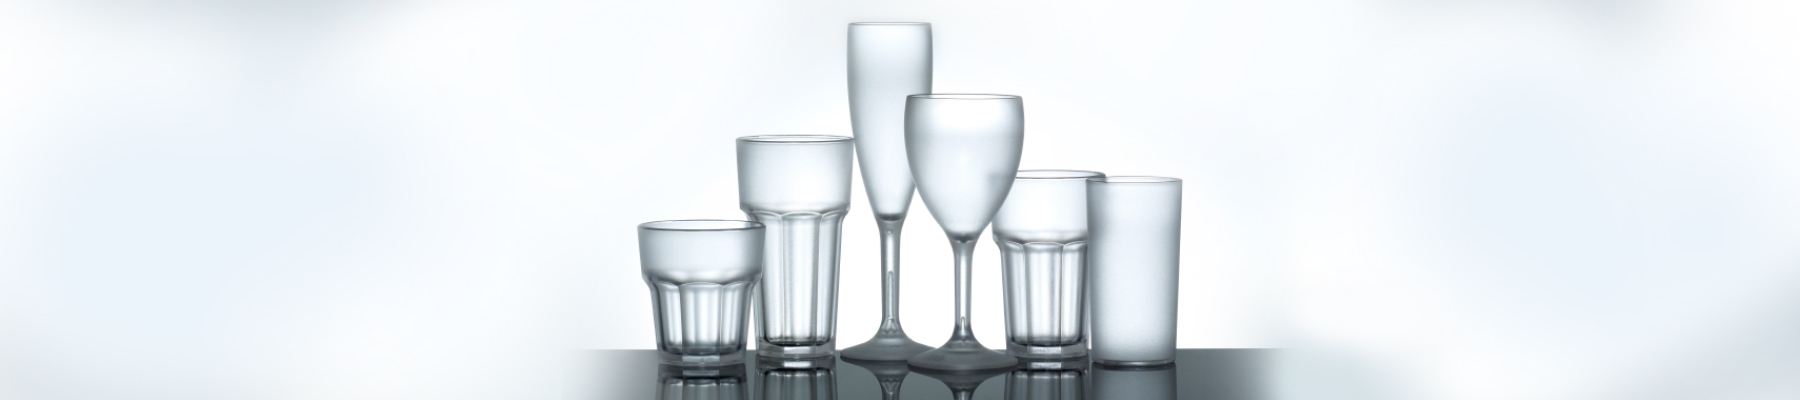 frosted plastic drinking wine glasses